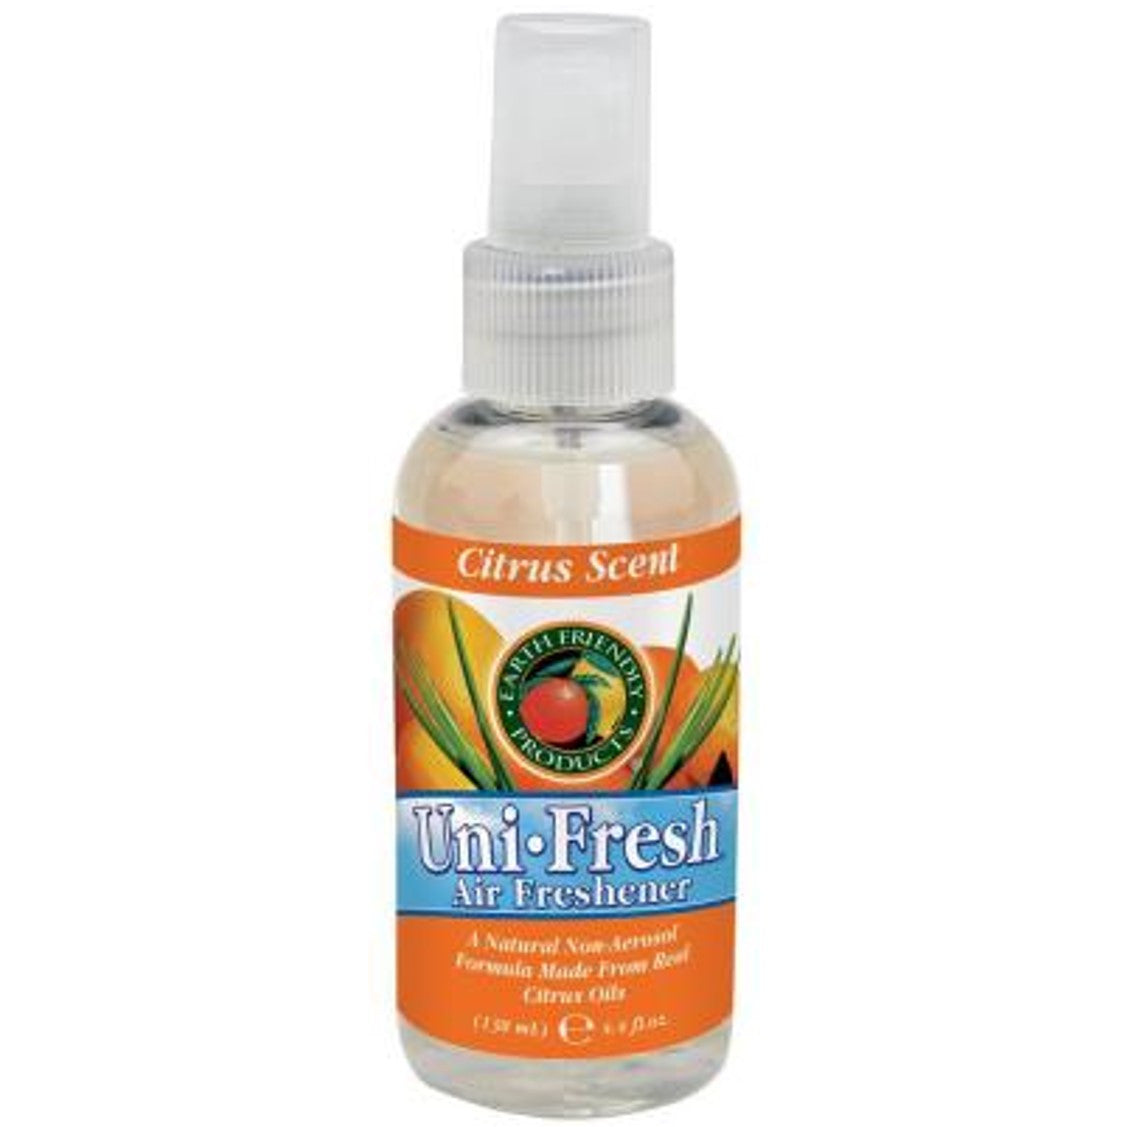 Earth Friendly Uni Fresh Air Freshener - Citrus Blend, 130 ml.-NaturesWisdom